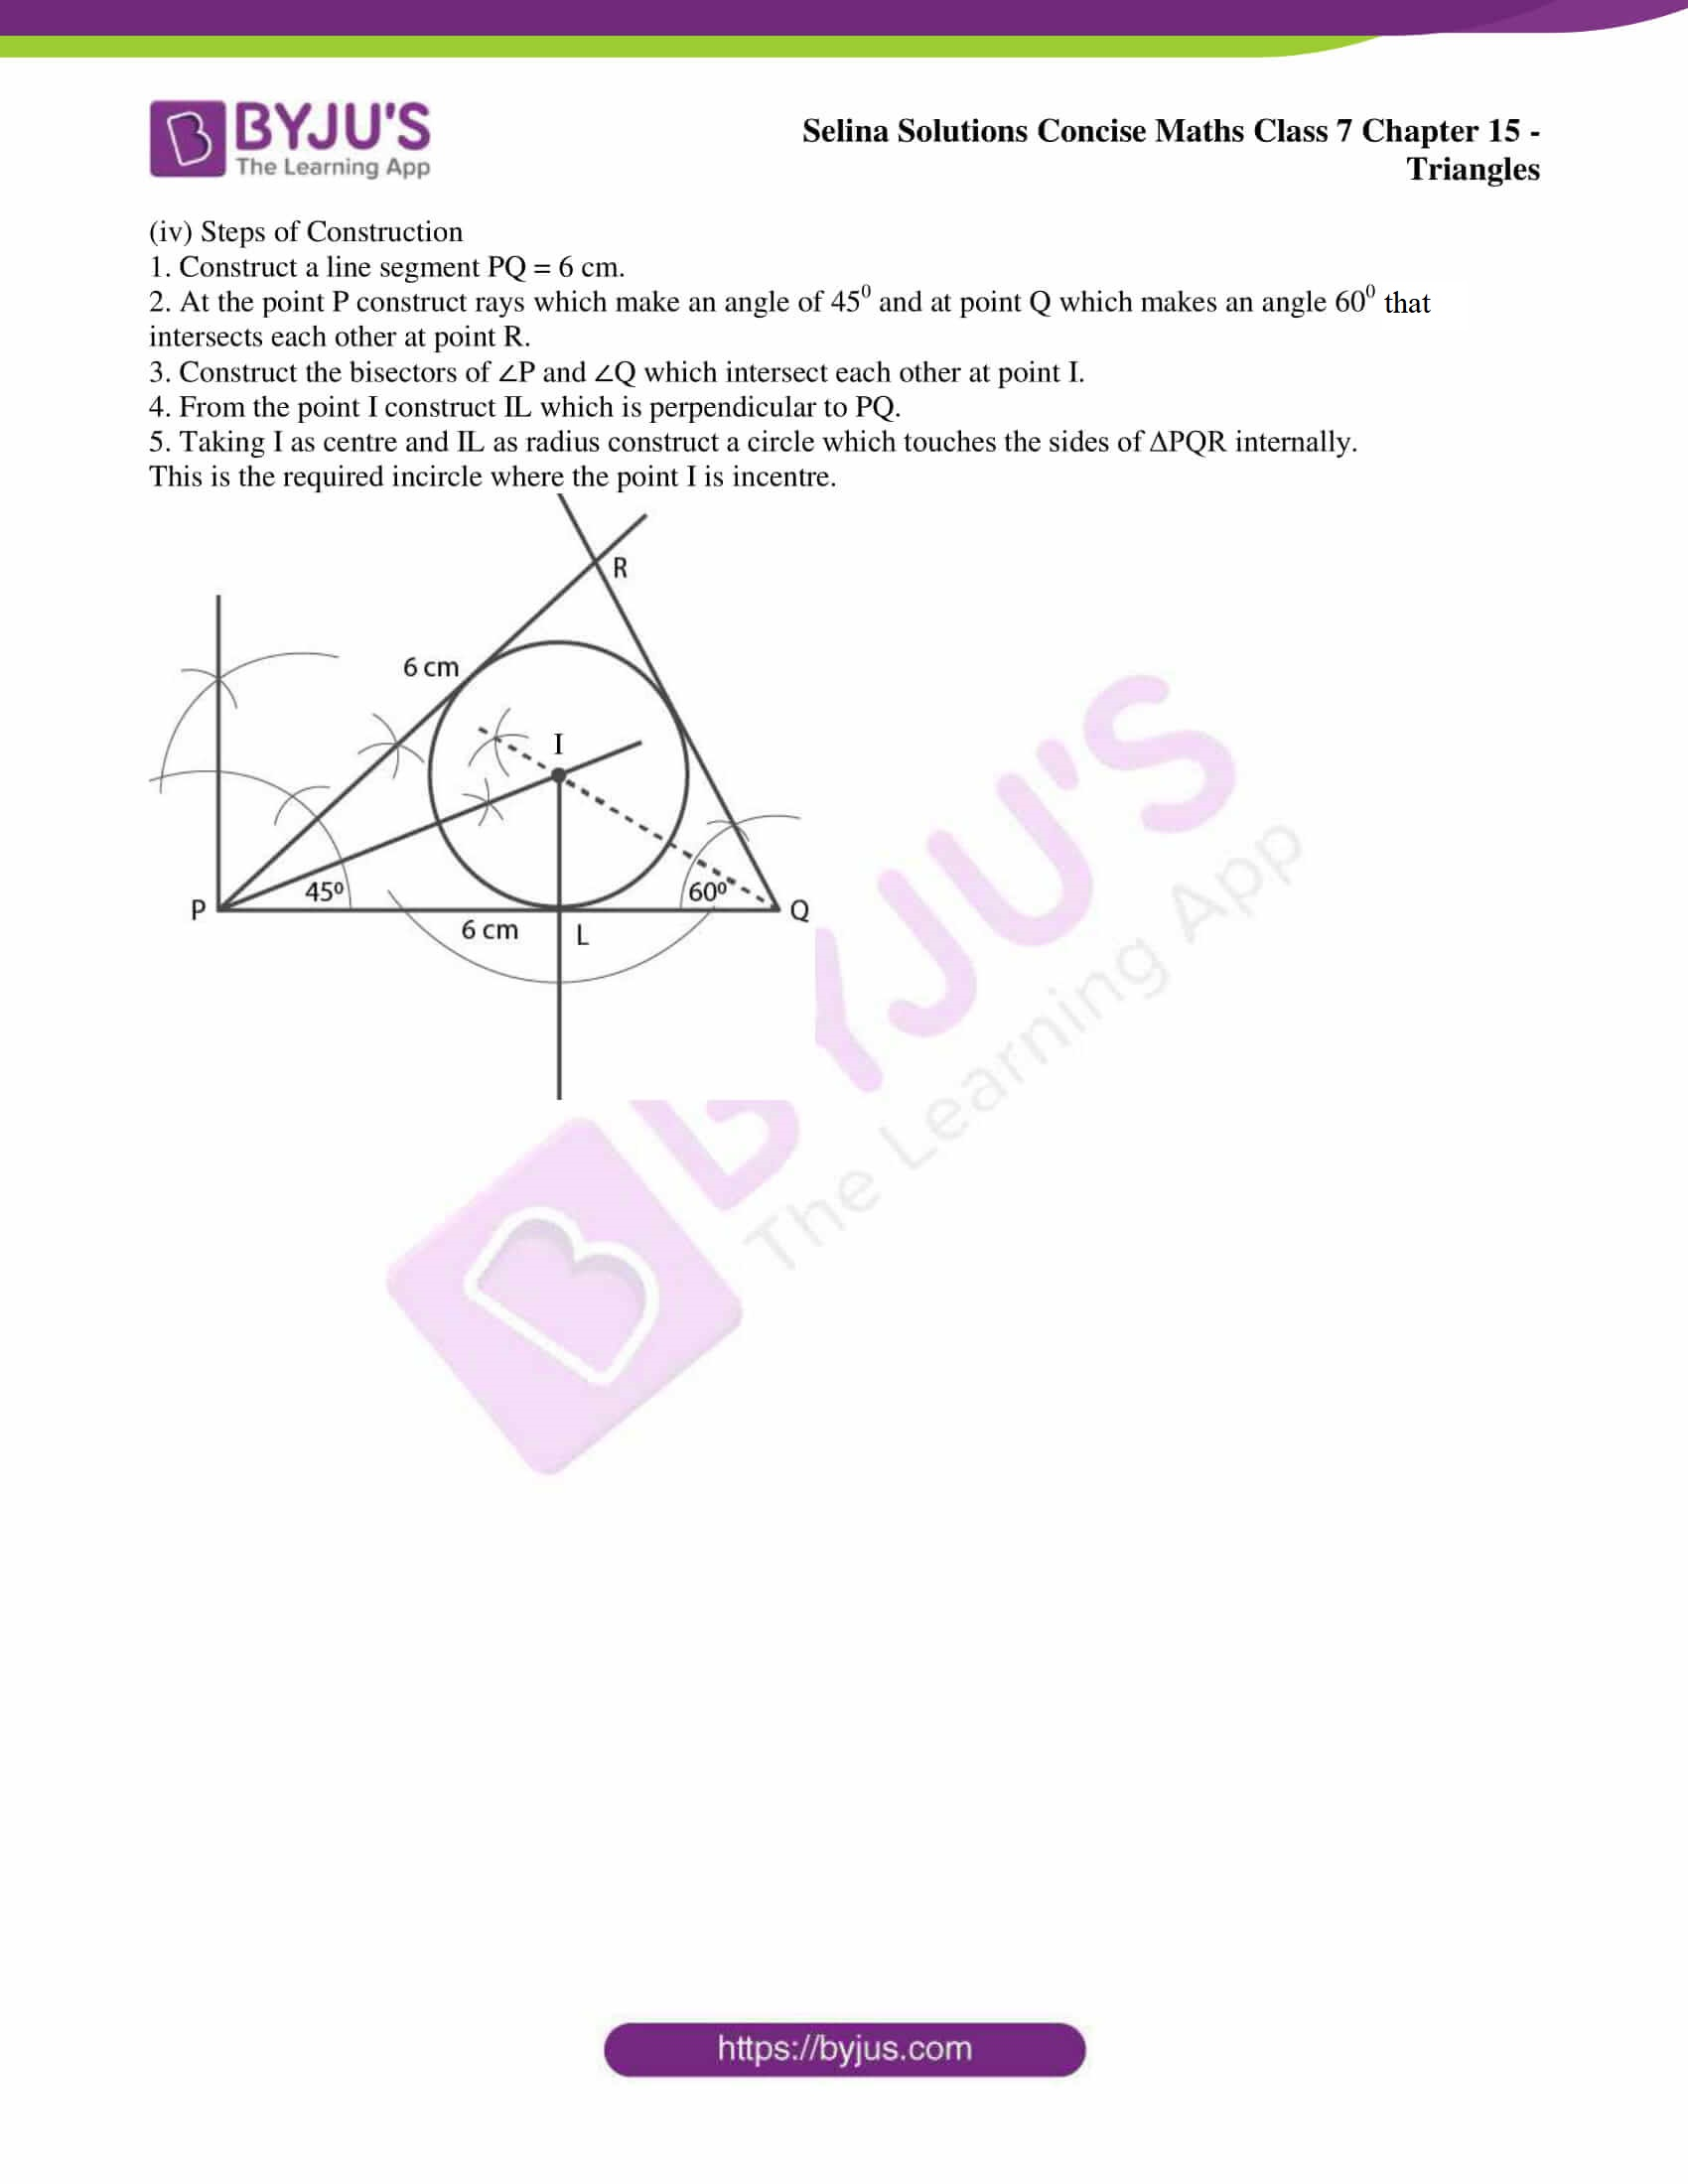 selina sol concise maths class 7 chapter 15 ex c 12